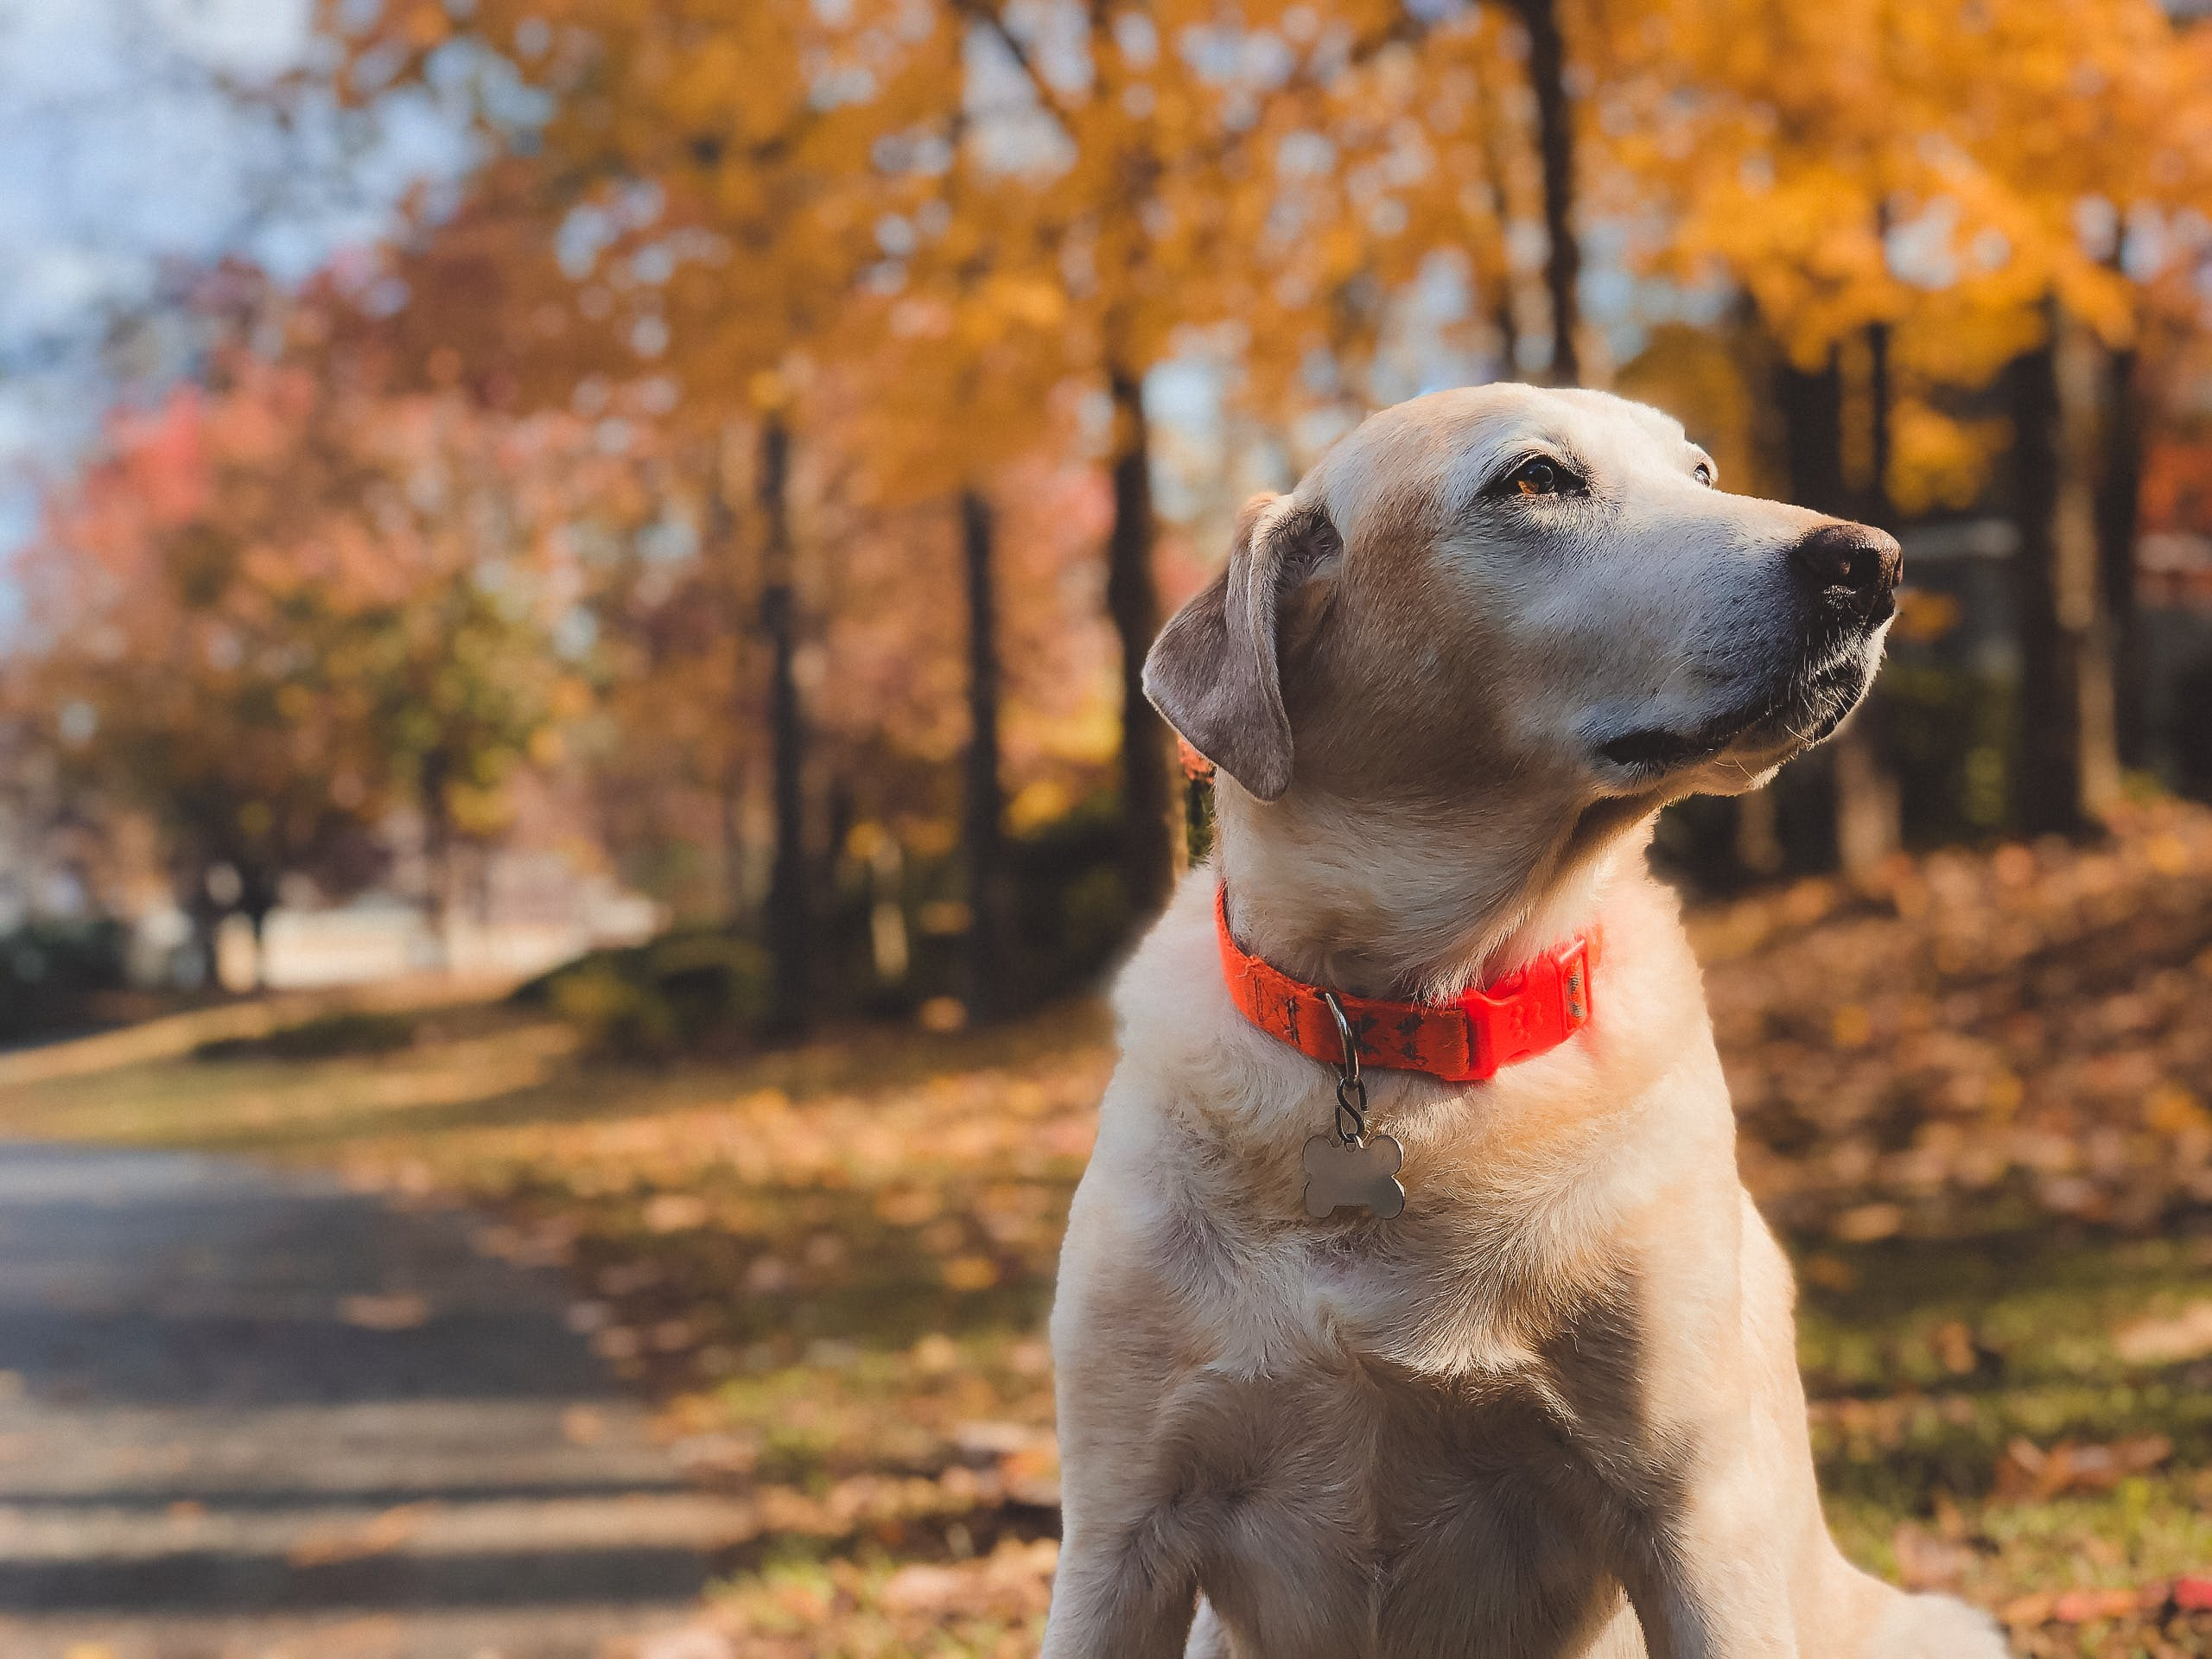 Shallow Focus Photography of Adult Yellow Labrador Retriever Sitting on Roadside during Day